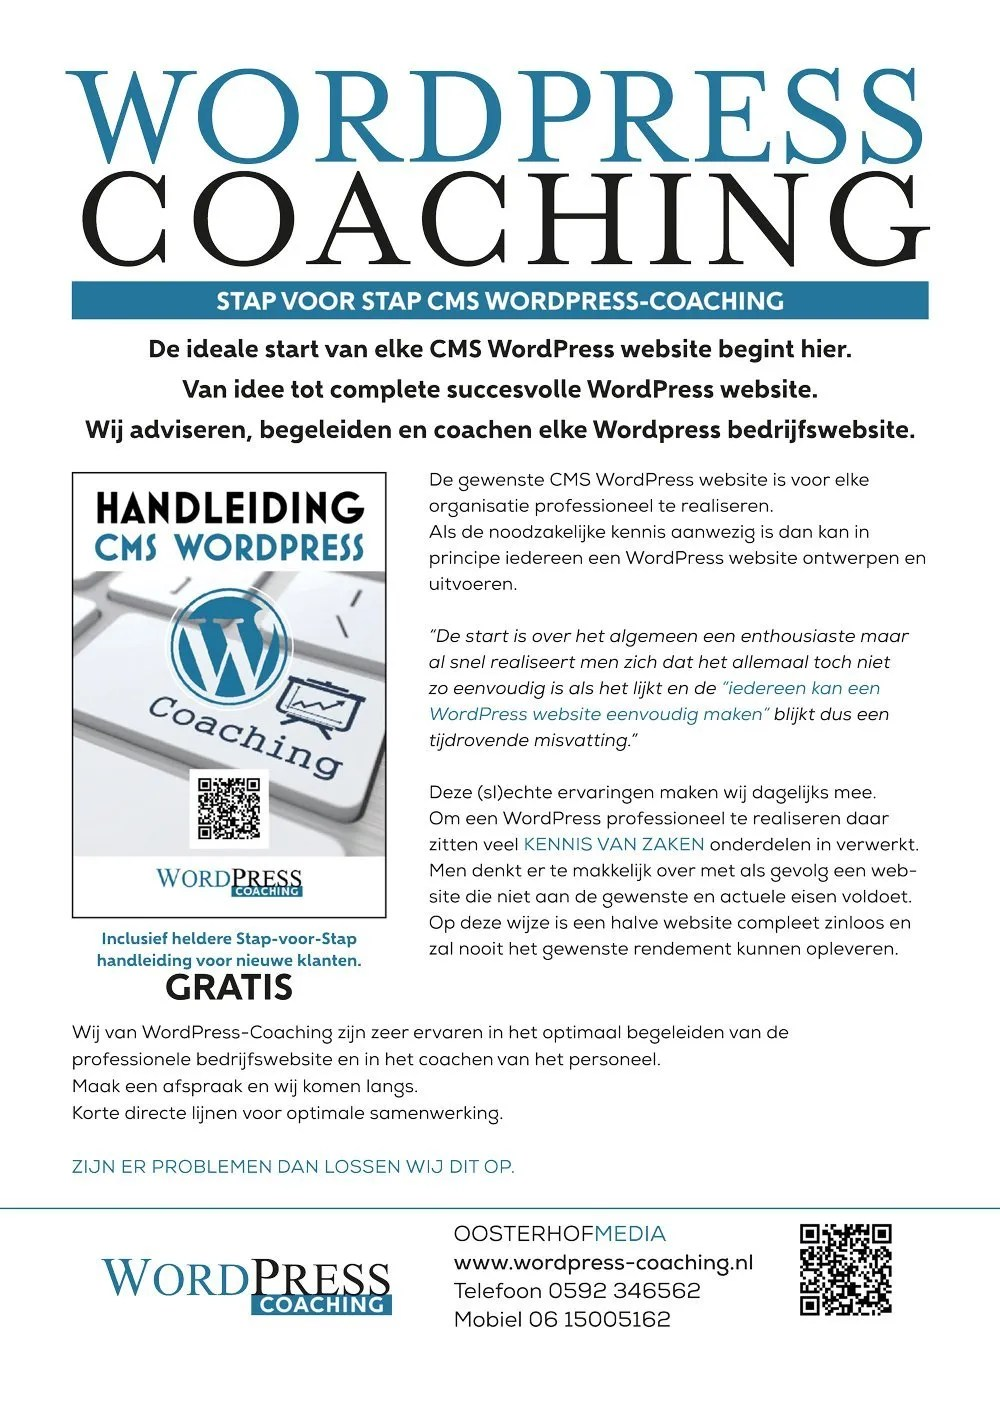 Wordpress-Coaching-WORPRESS-HANDLEIDING-FLYER-JUNi2019-1000x1415.jpg